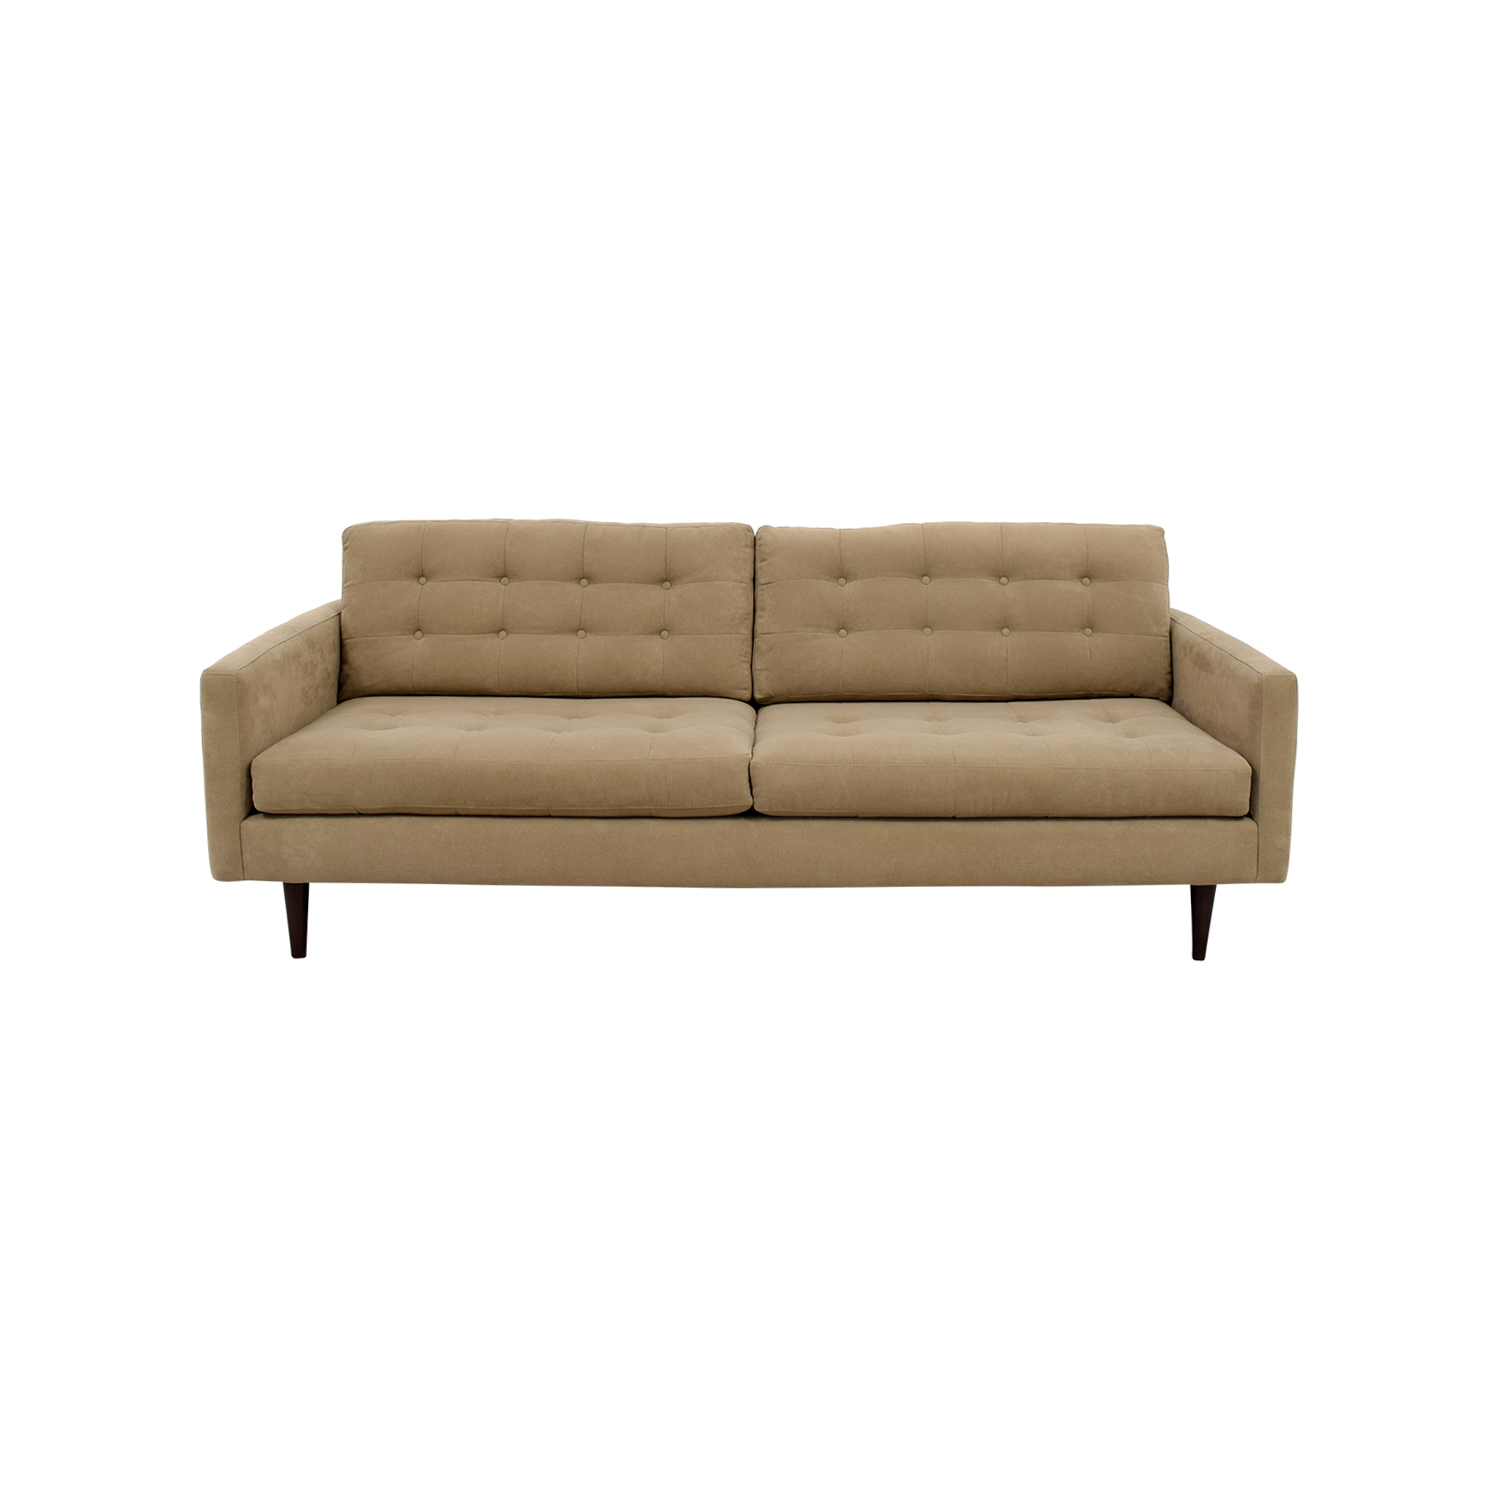 Khaki Sofa Khaki Sofa Furniture4u Thesofa